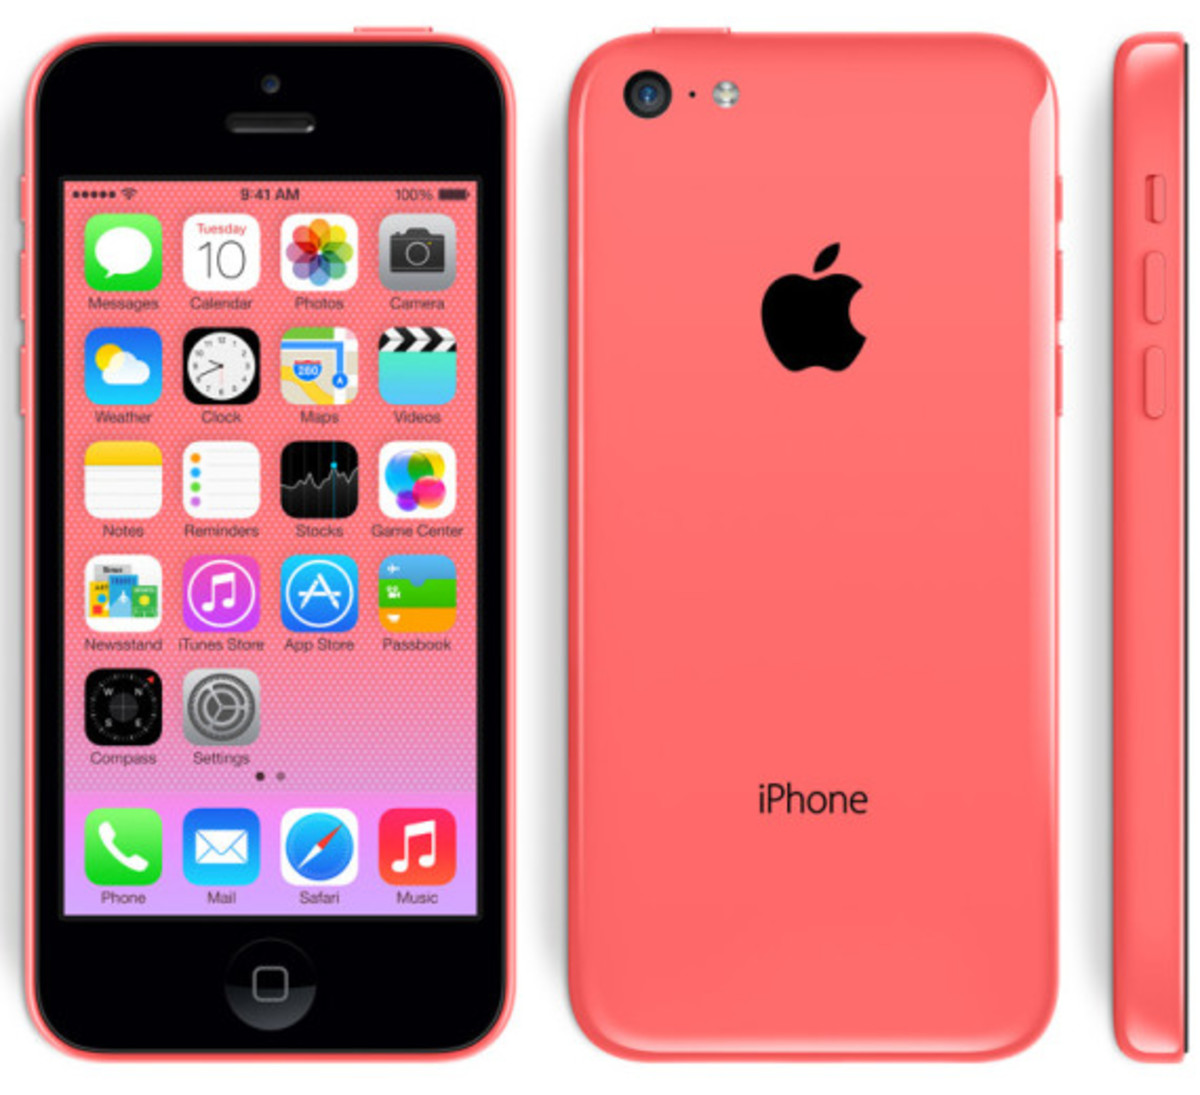 Apple iPhone 5C & 5S | Available Now - 10